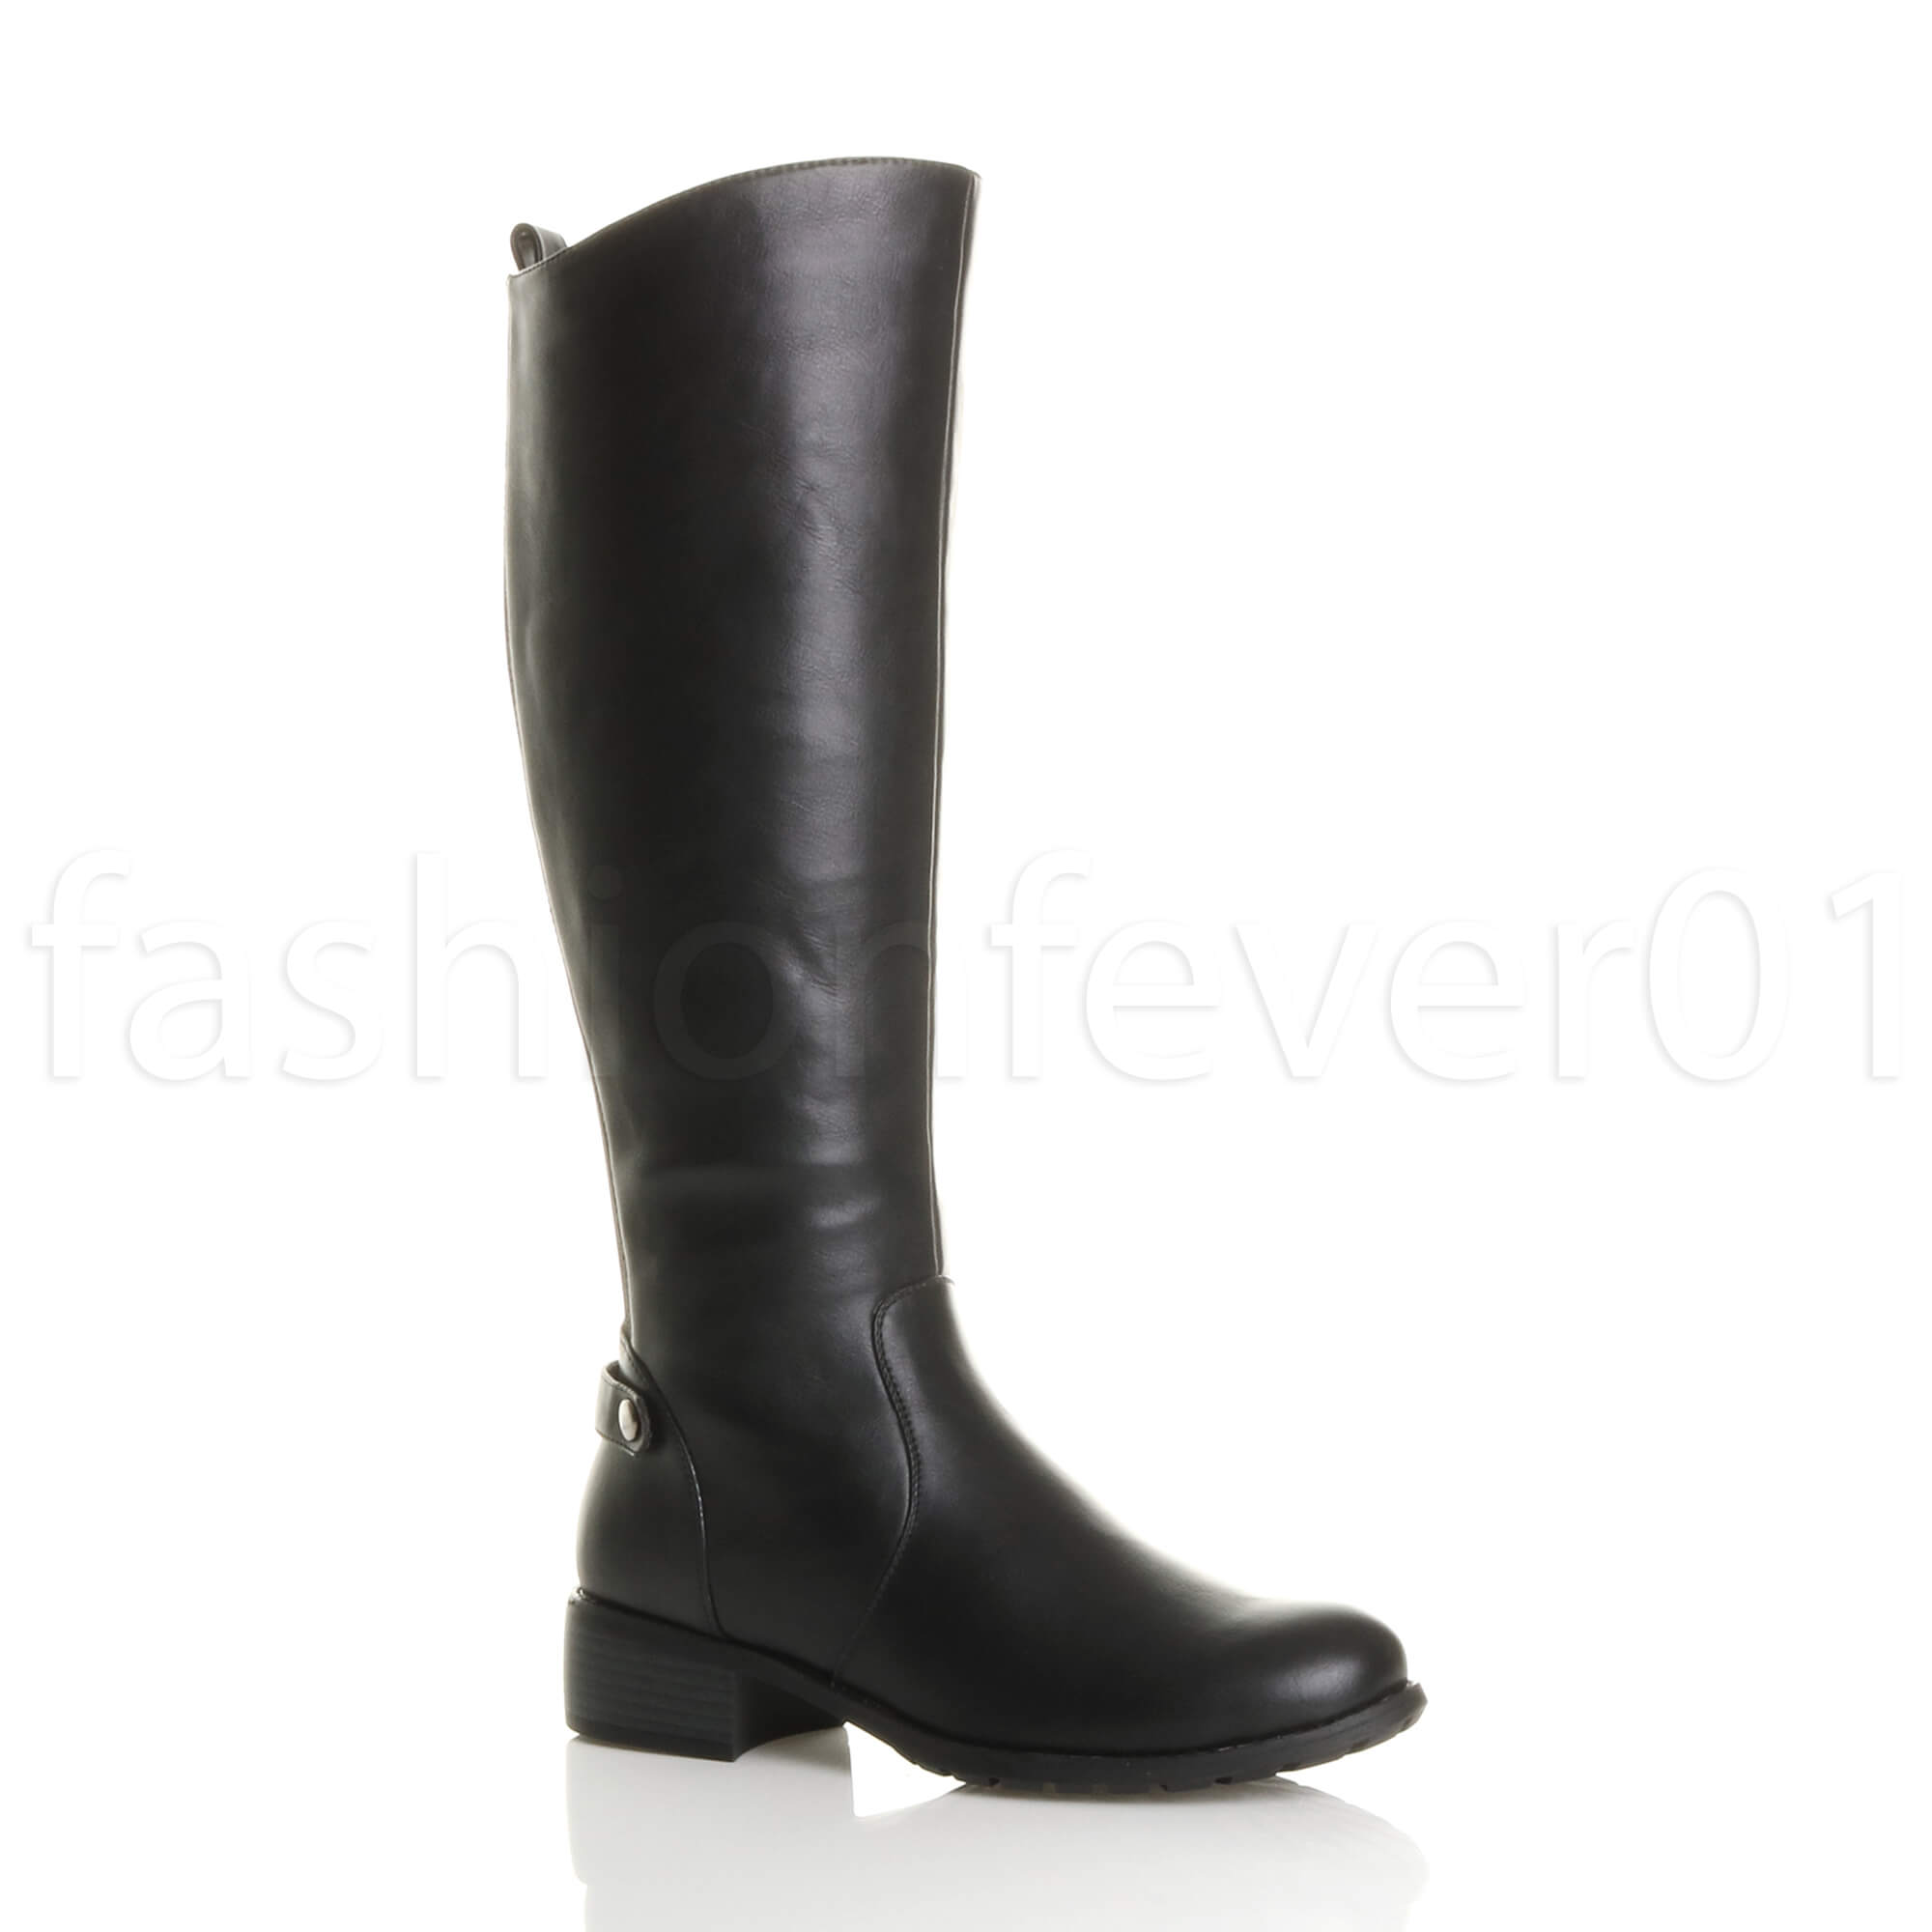 2d08c0fcb5a814 Womens Ladies Low Mid Heel Gusset Stretch Chelsea Zip Calf Riding BOOTS Size  UK 3 / EU 36 / US 5 Black Matte. About this product. Picture 1 of 7;  Picture 2 ...